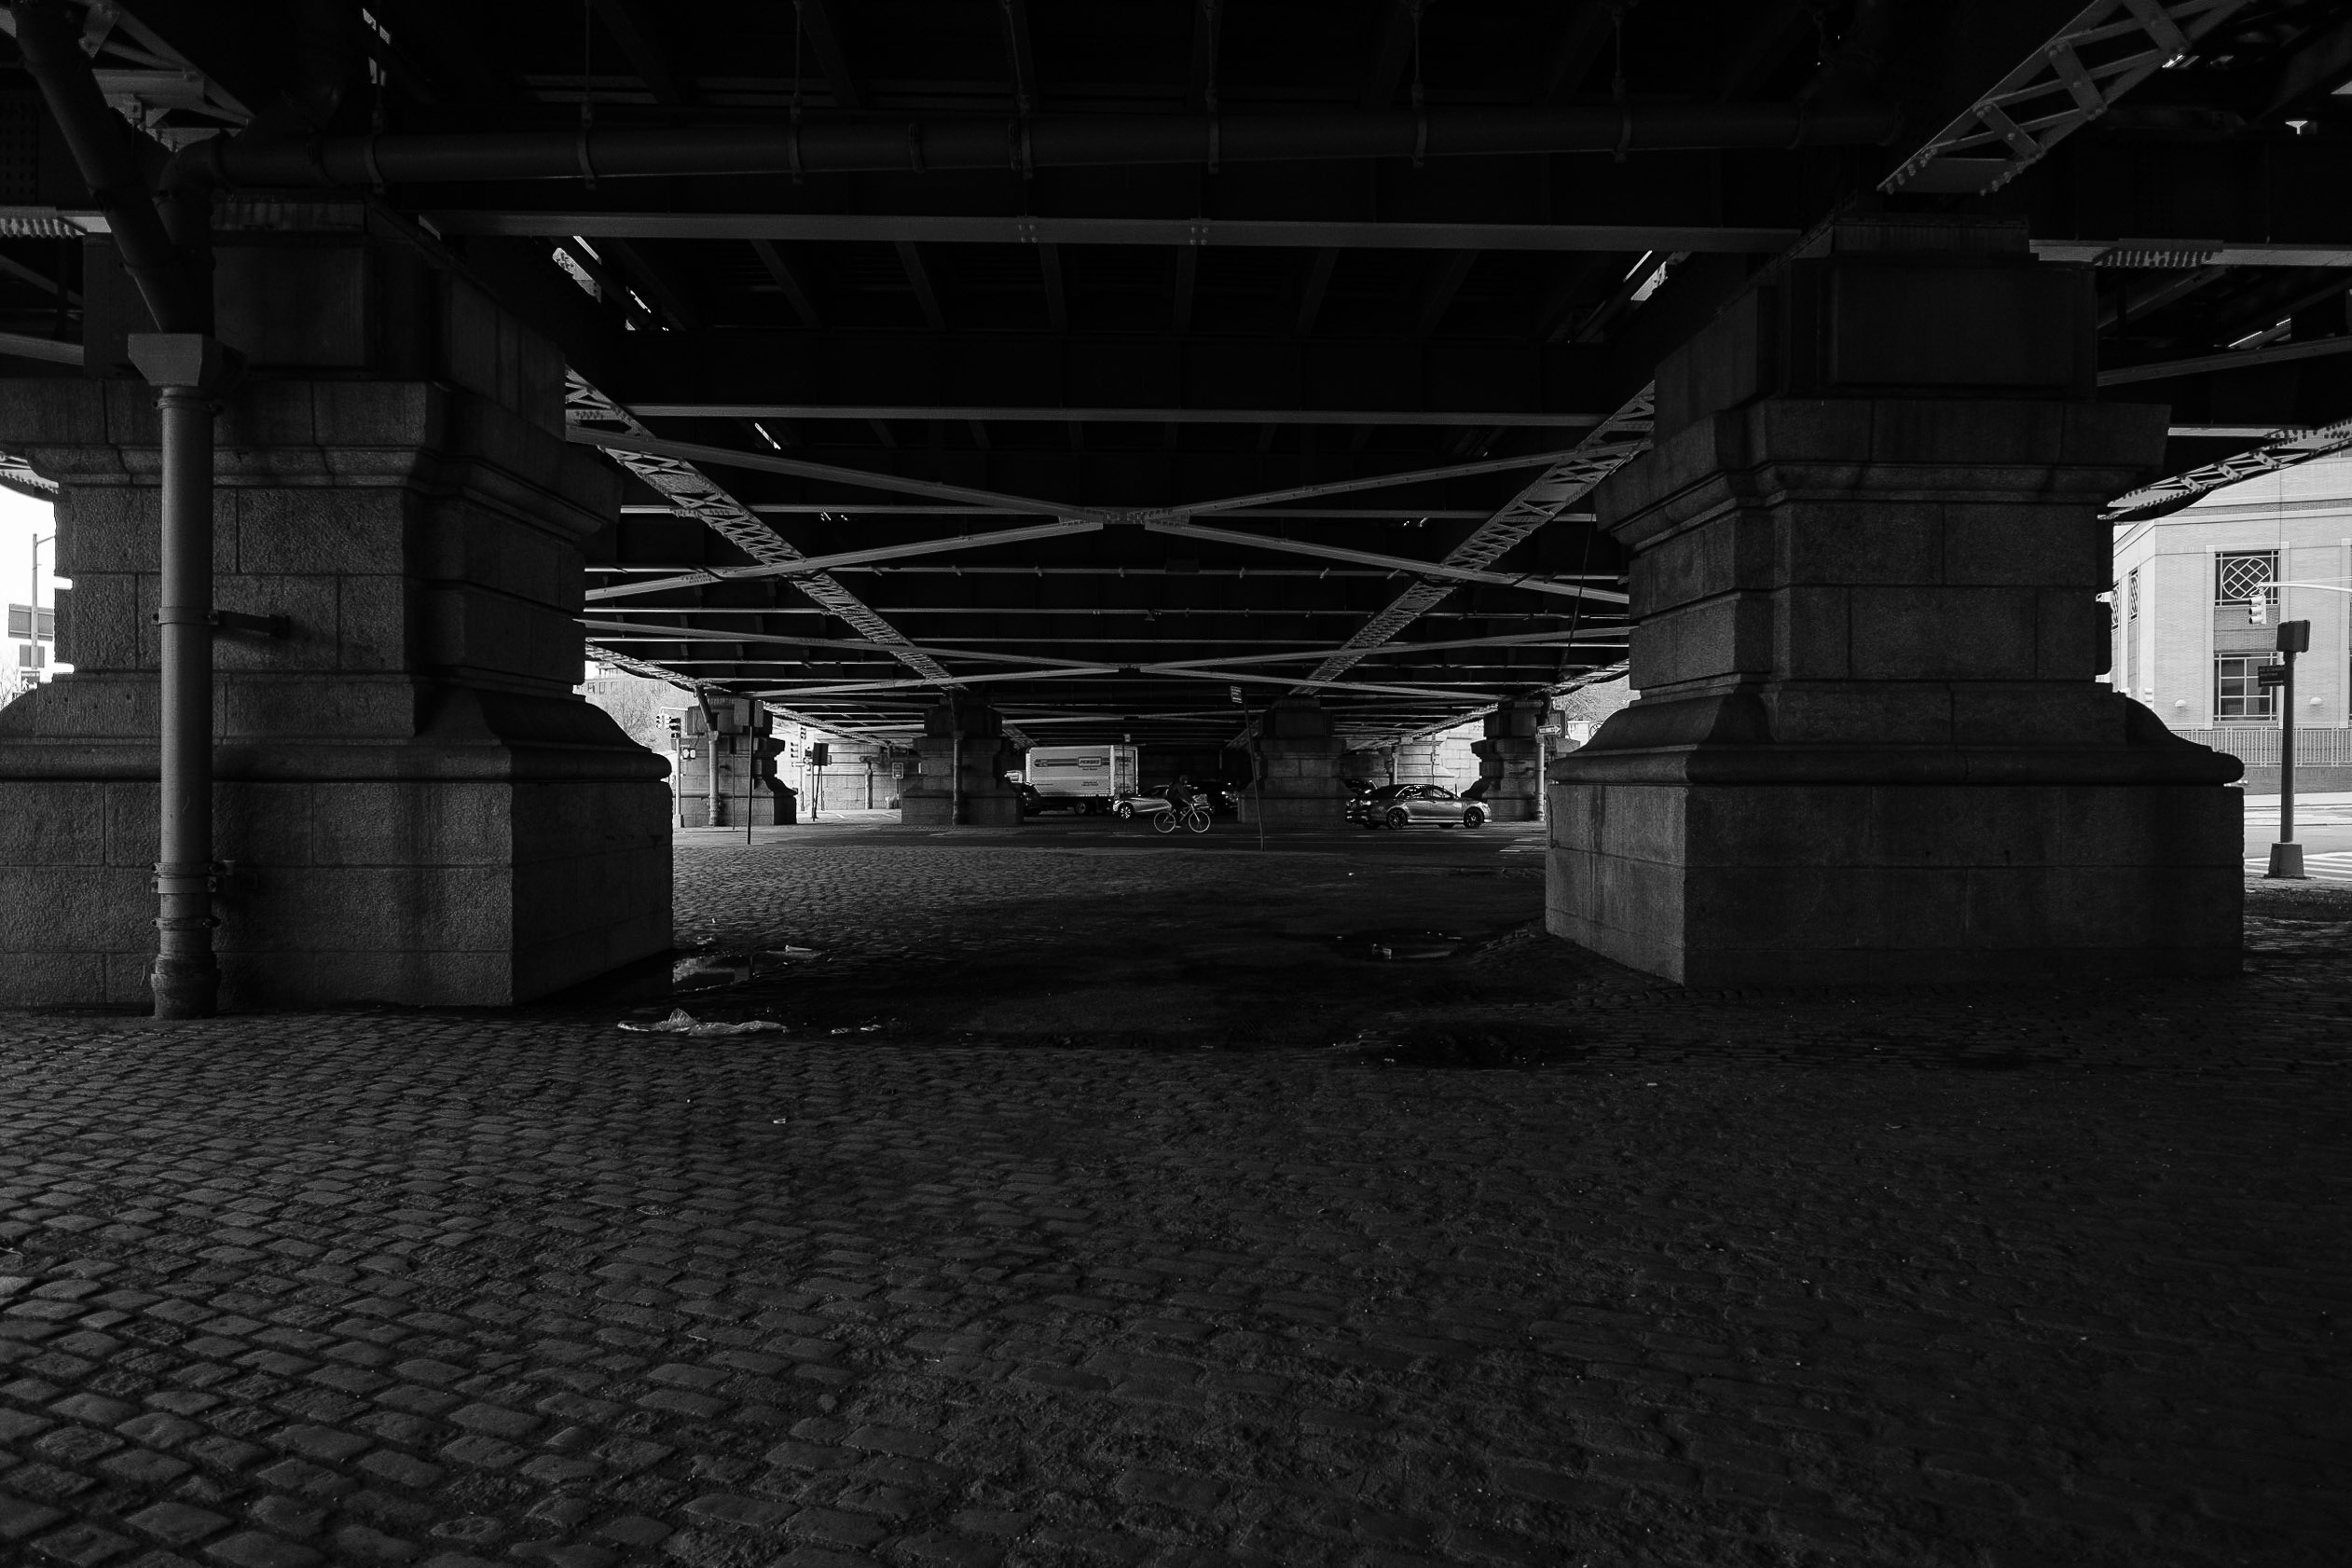 under-the-manhattan-bridge-black-and-white-zach-barocas-photography